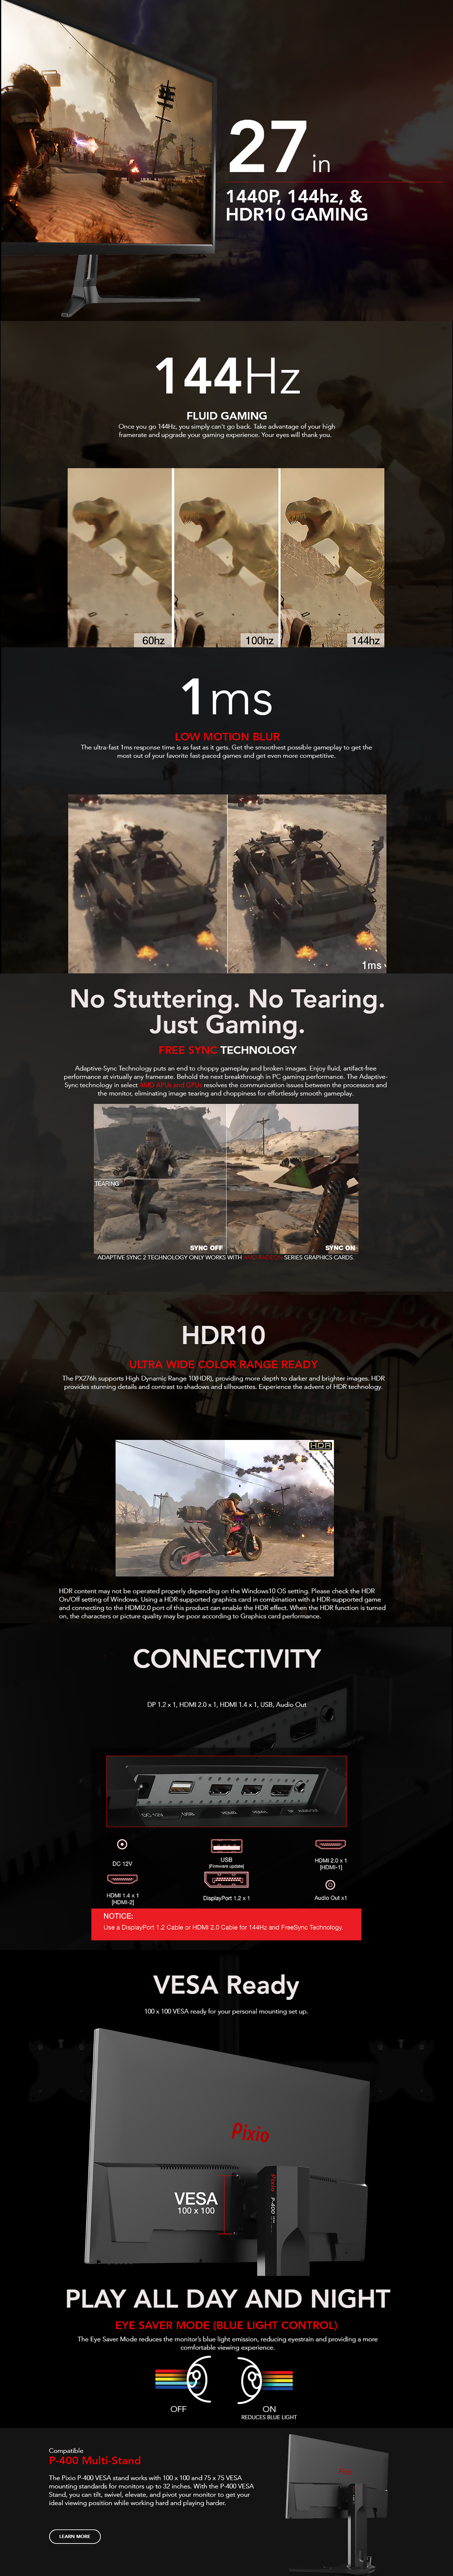 Details about 27 inch Gaming Monitor Pixio PX276h 144Hz HDR WQHD 2560 x  1440 1ms FreeSync